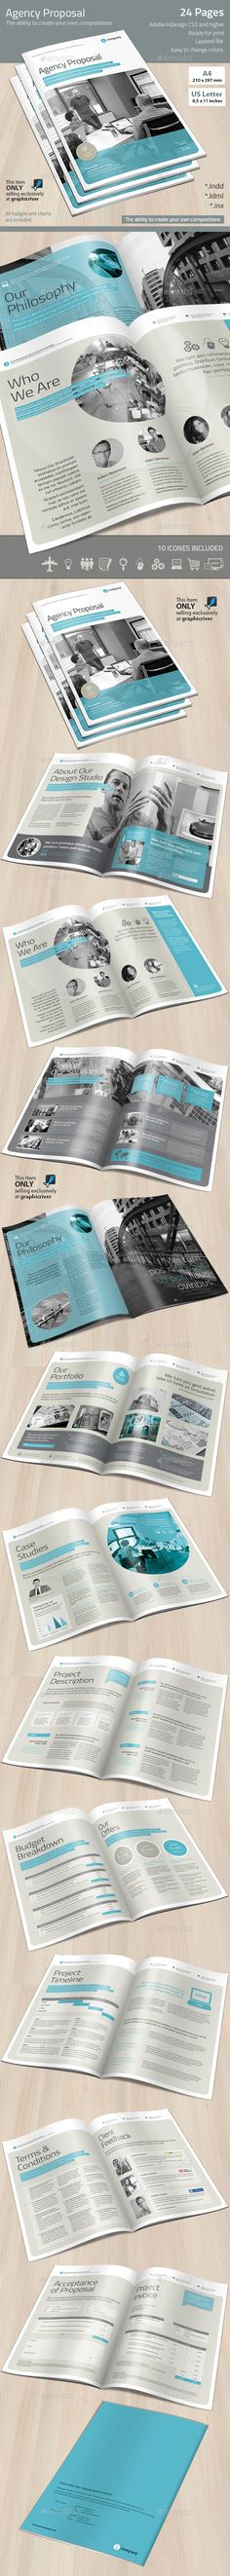 Agency Proposal Template | Download: http://graphicriver.net/item/agency-proposal/8942815?ref=ksioks